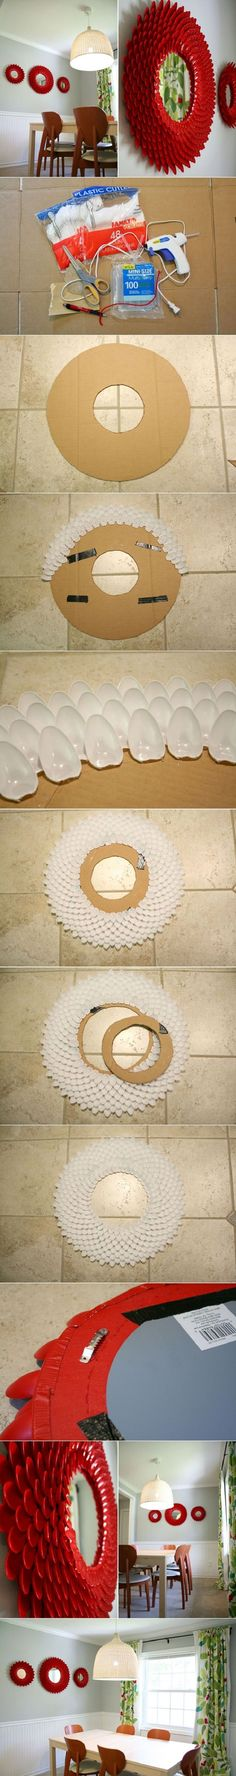 DIY Decorative Chrysanthemum Mirror with Plastic Spoons - 16 DIY Decor Crafts for Your Home | GleamItUp #DIYHomeDecorCrafts